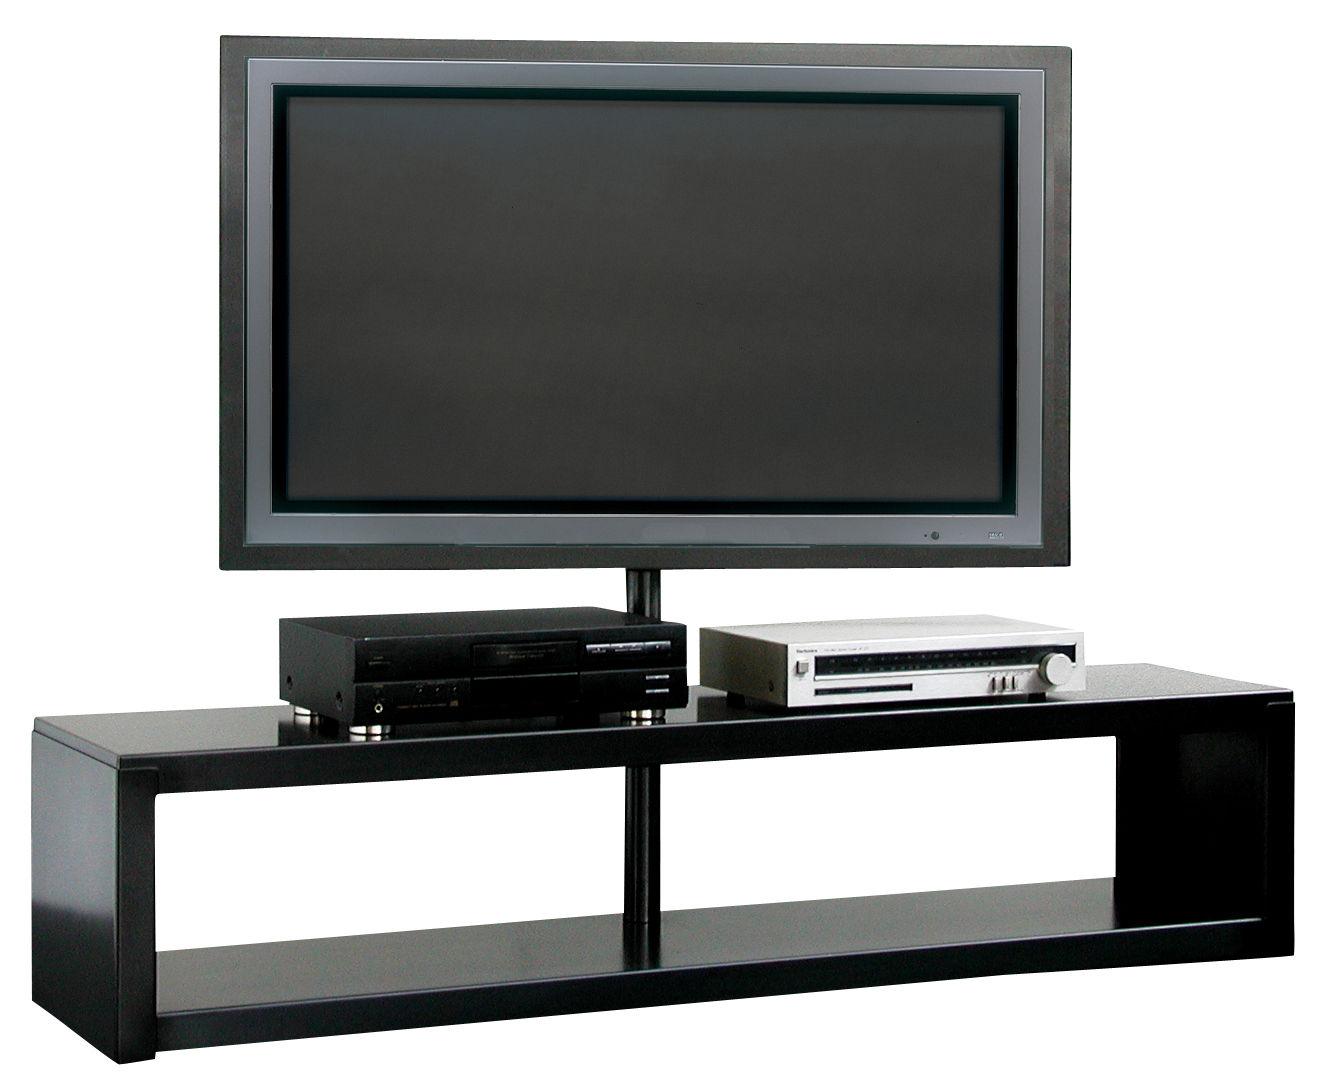 big irony plasma television table console flat screen support black phosphated steel by zeus. Black Bedroom Furniture Sets. Home Design Ideas